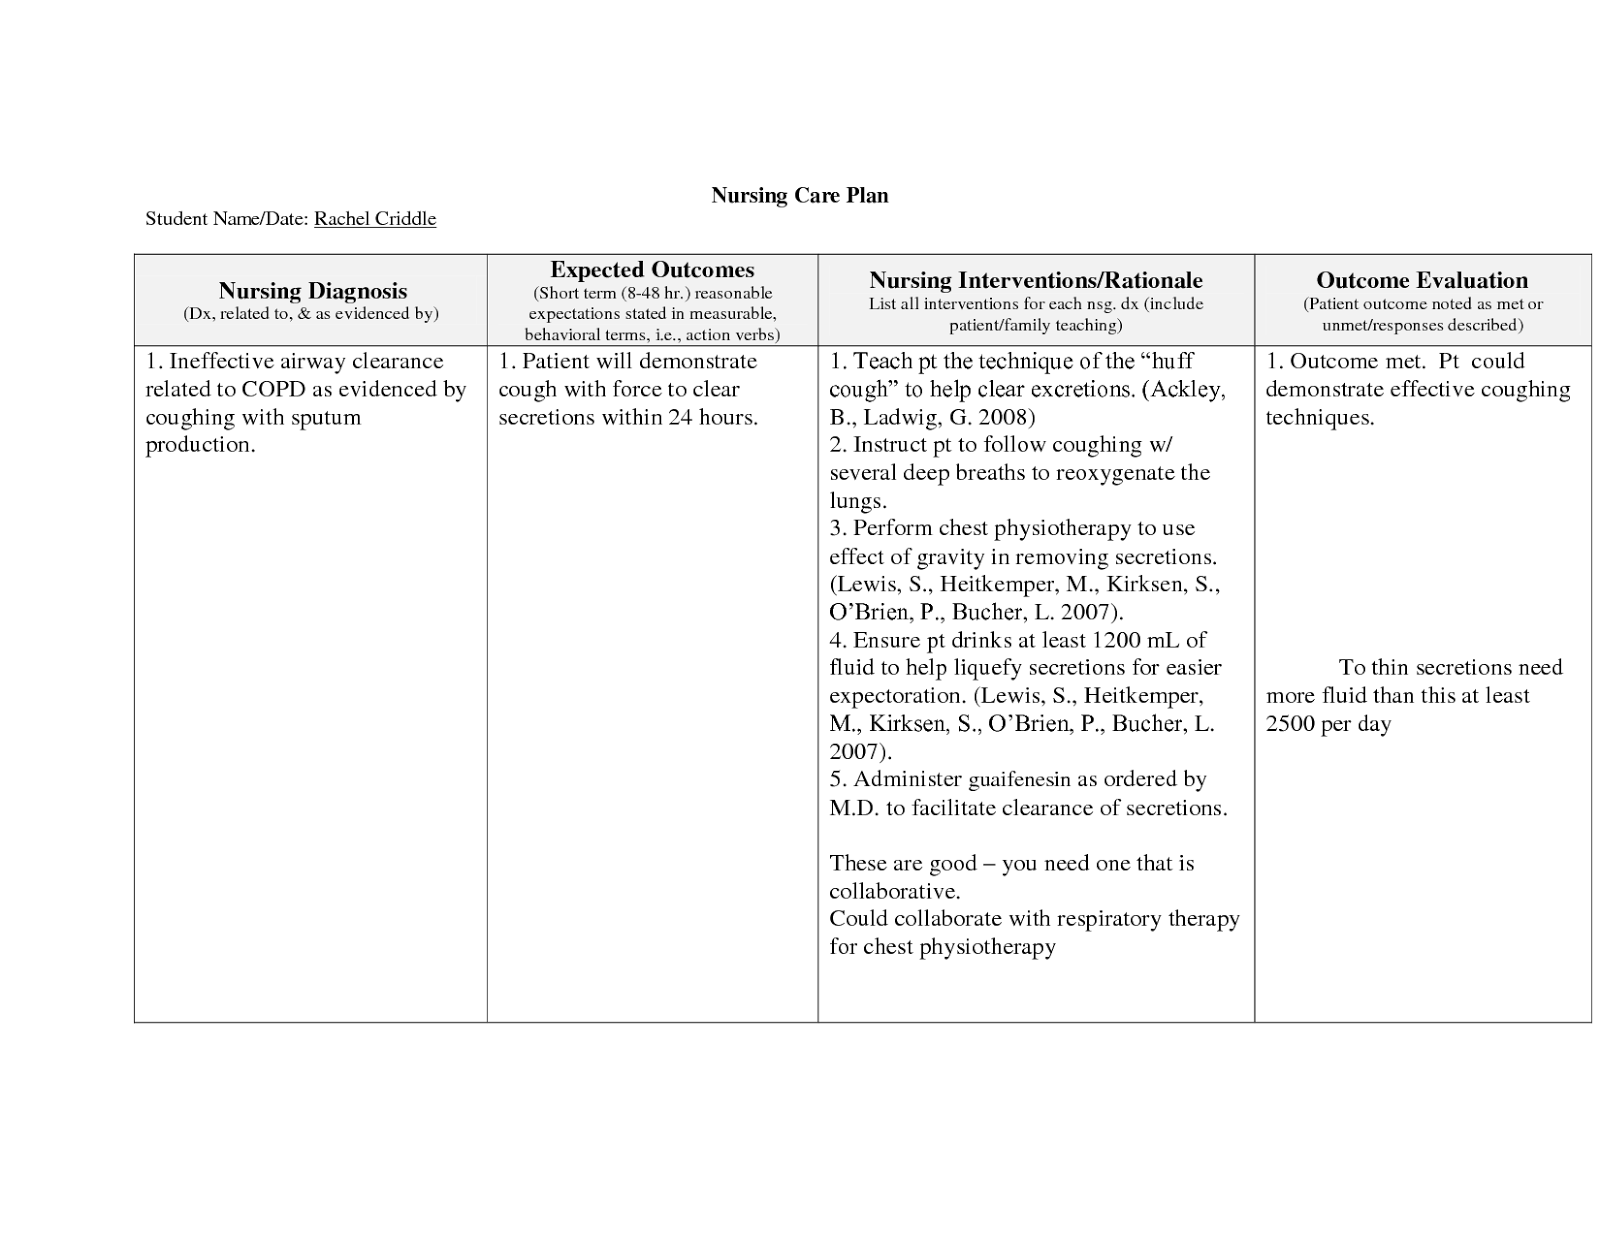 nursing teaching plan template - copd nursing care plan nursing care plan examples